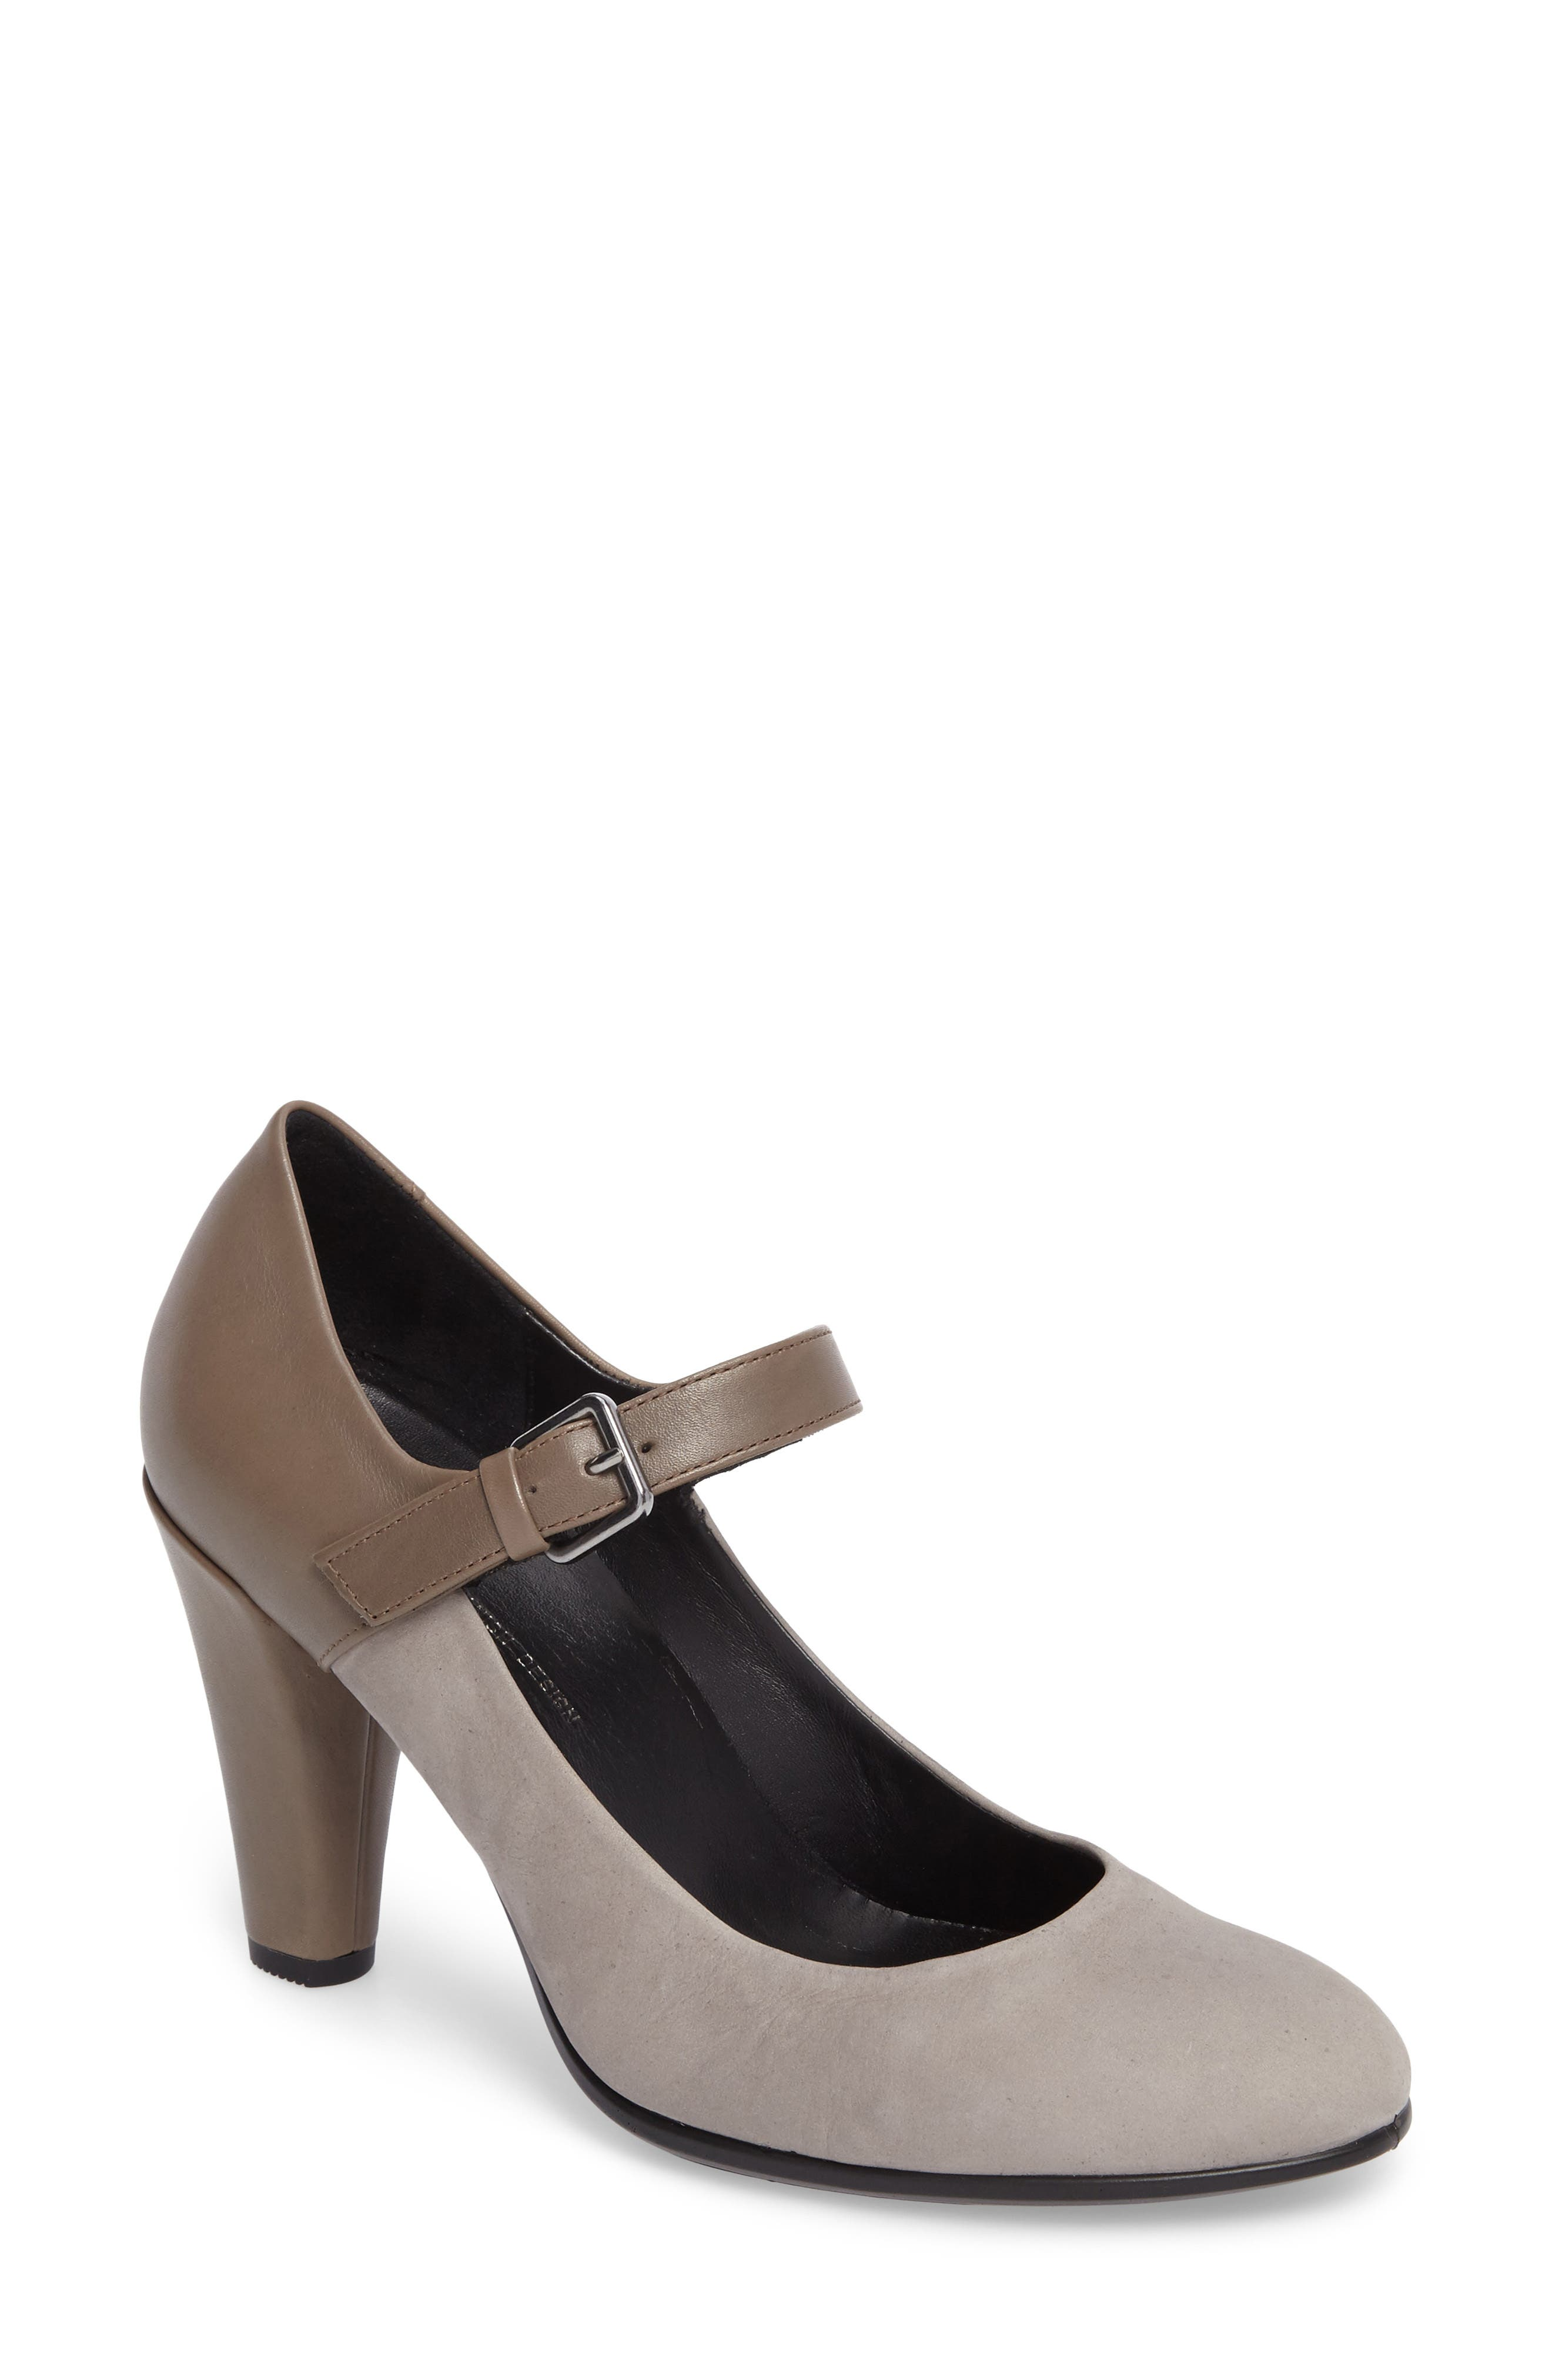 Alternate Image 1 Selected - ECCO Shape 75 Mary Jane Pump (Women)